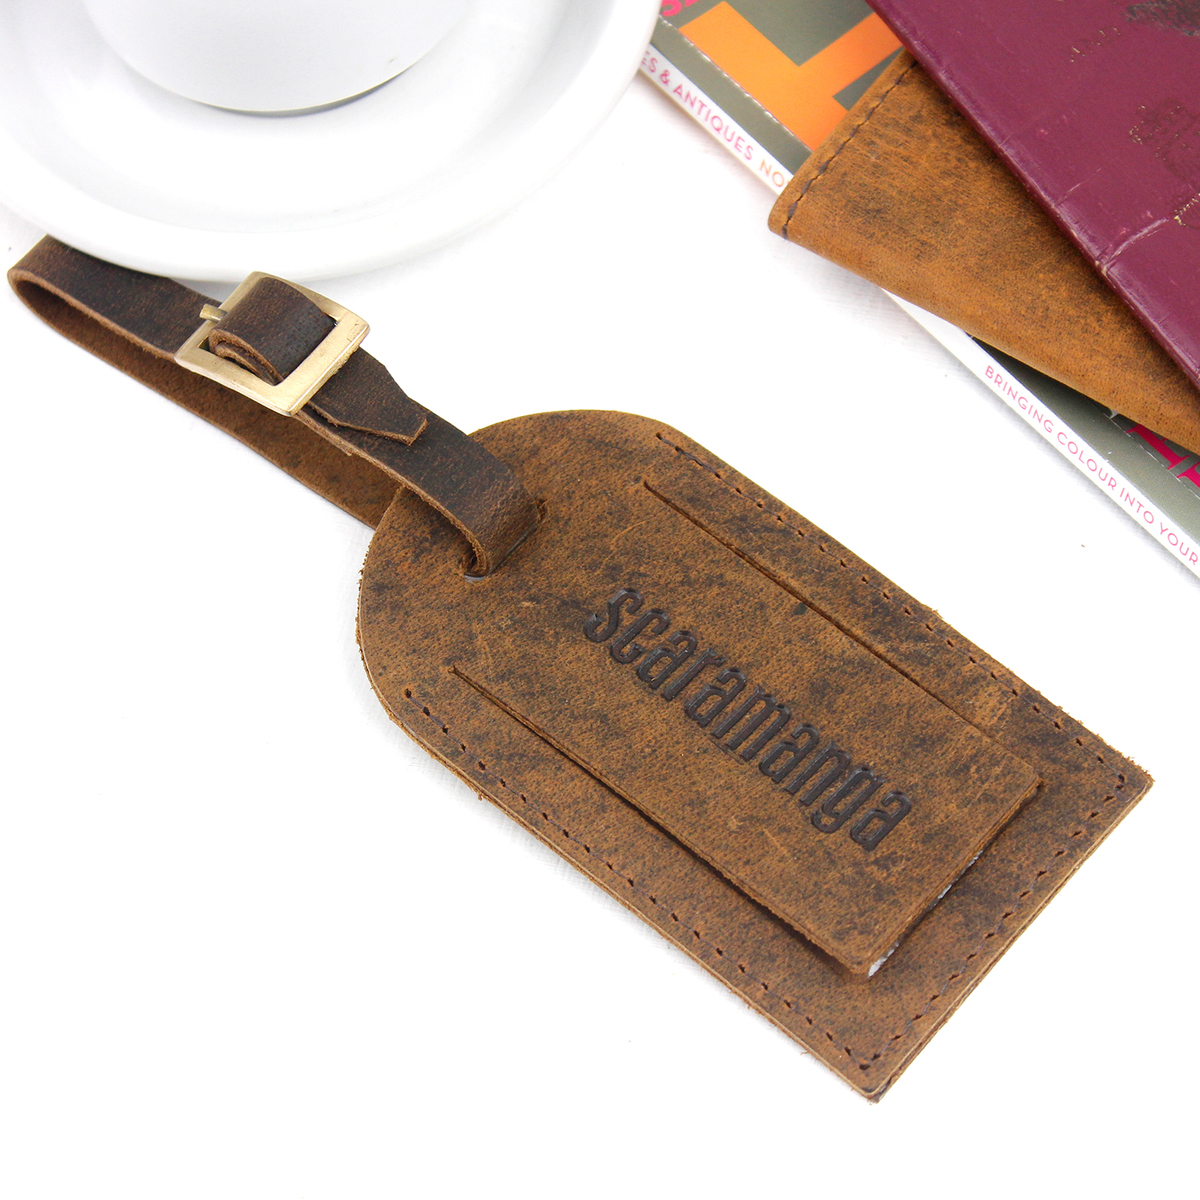 Scorpio Luggage Tag Label Travel Bag Label With Privacy Cover Luggage Tag Leather Personalized Suitcase Tag Travel Accessories